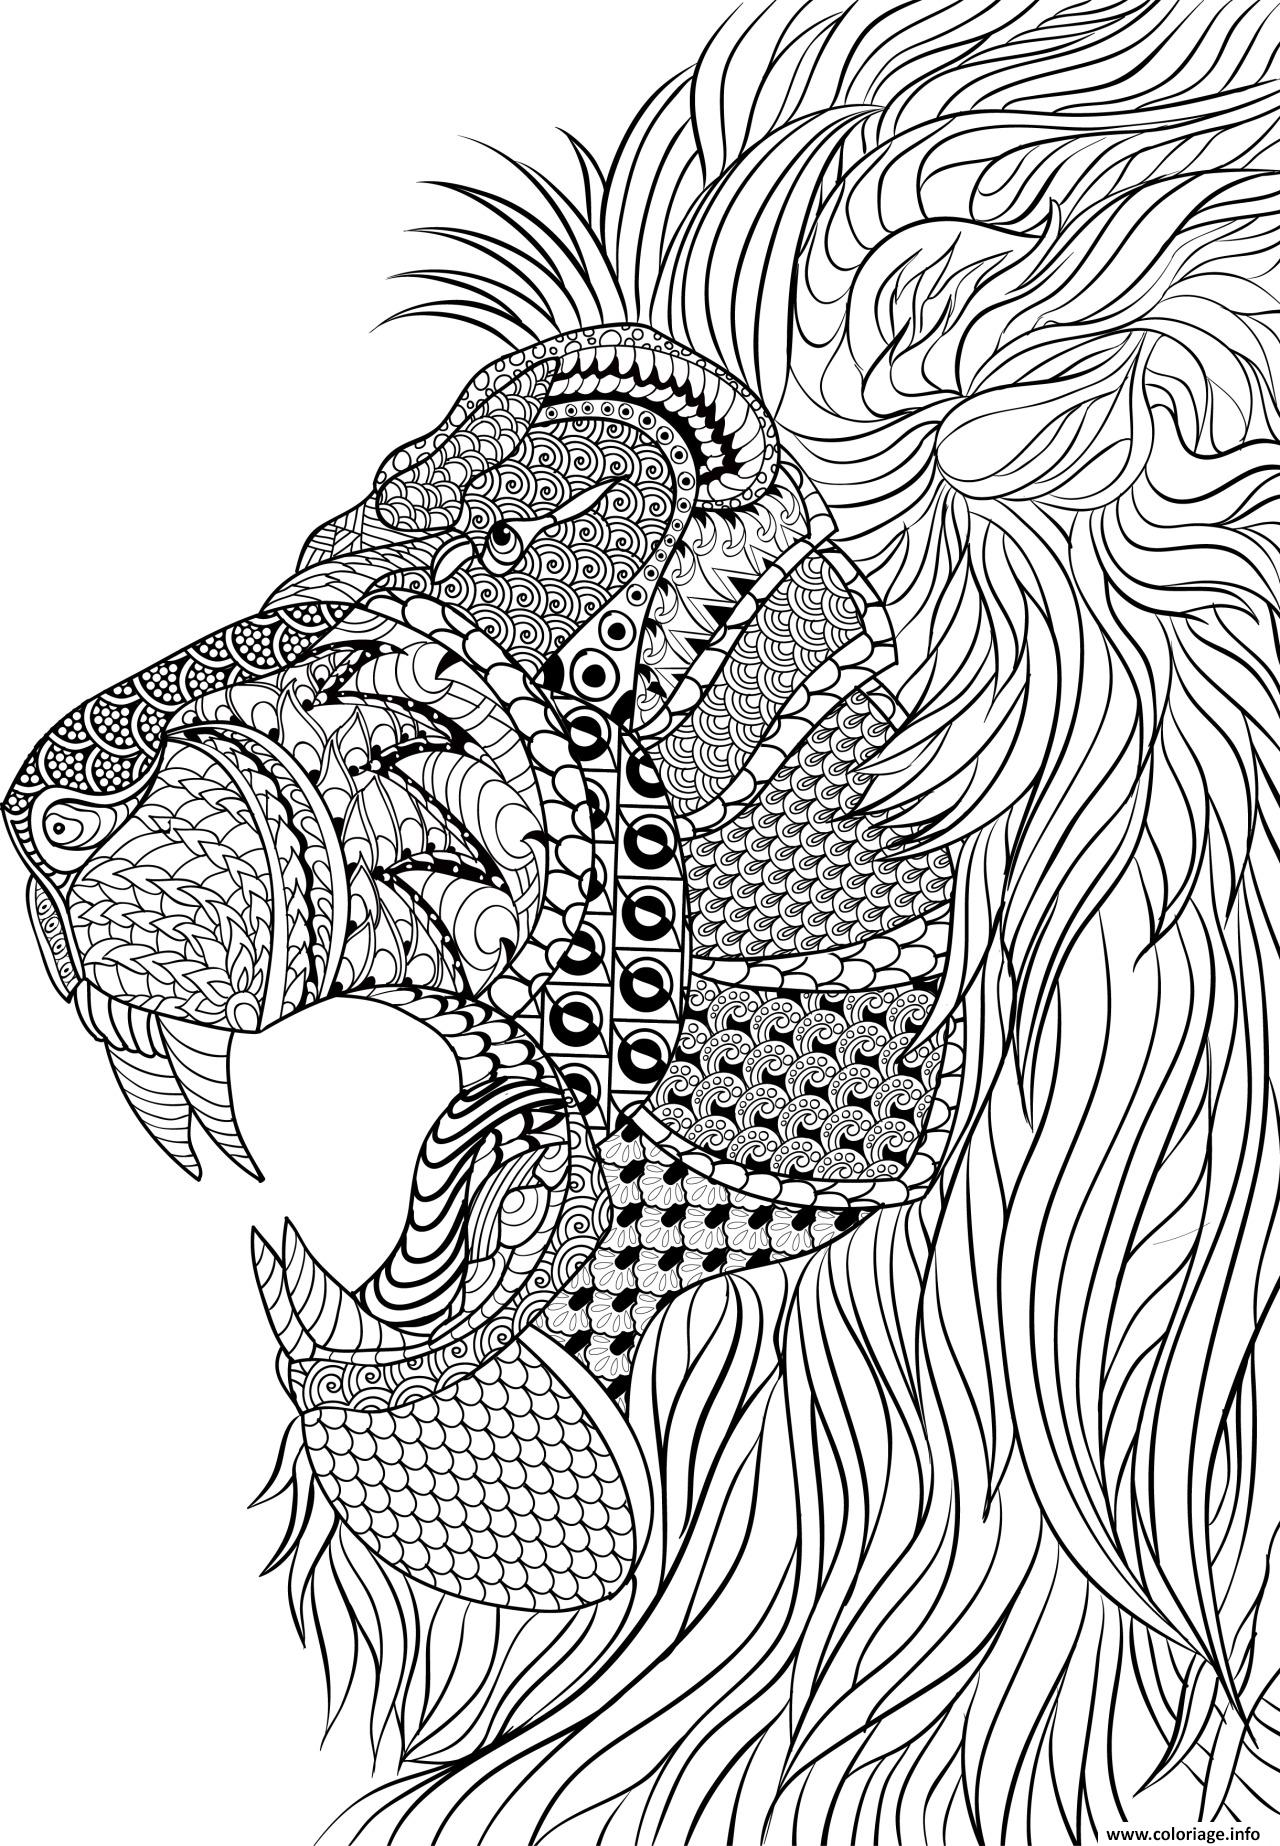 Coloriage Lion Adulte Anti Stress Dessin